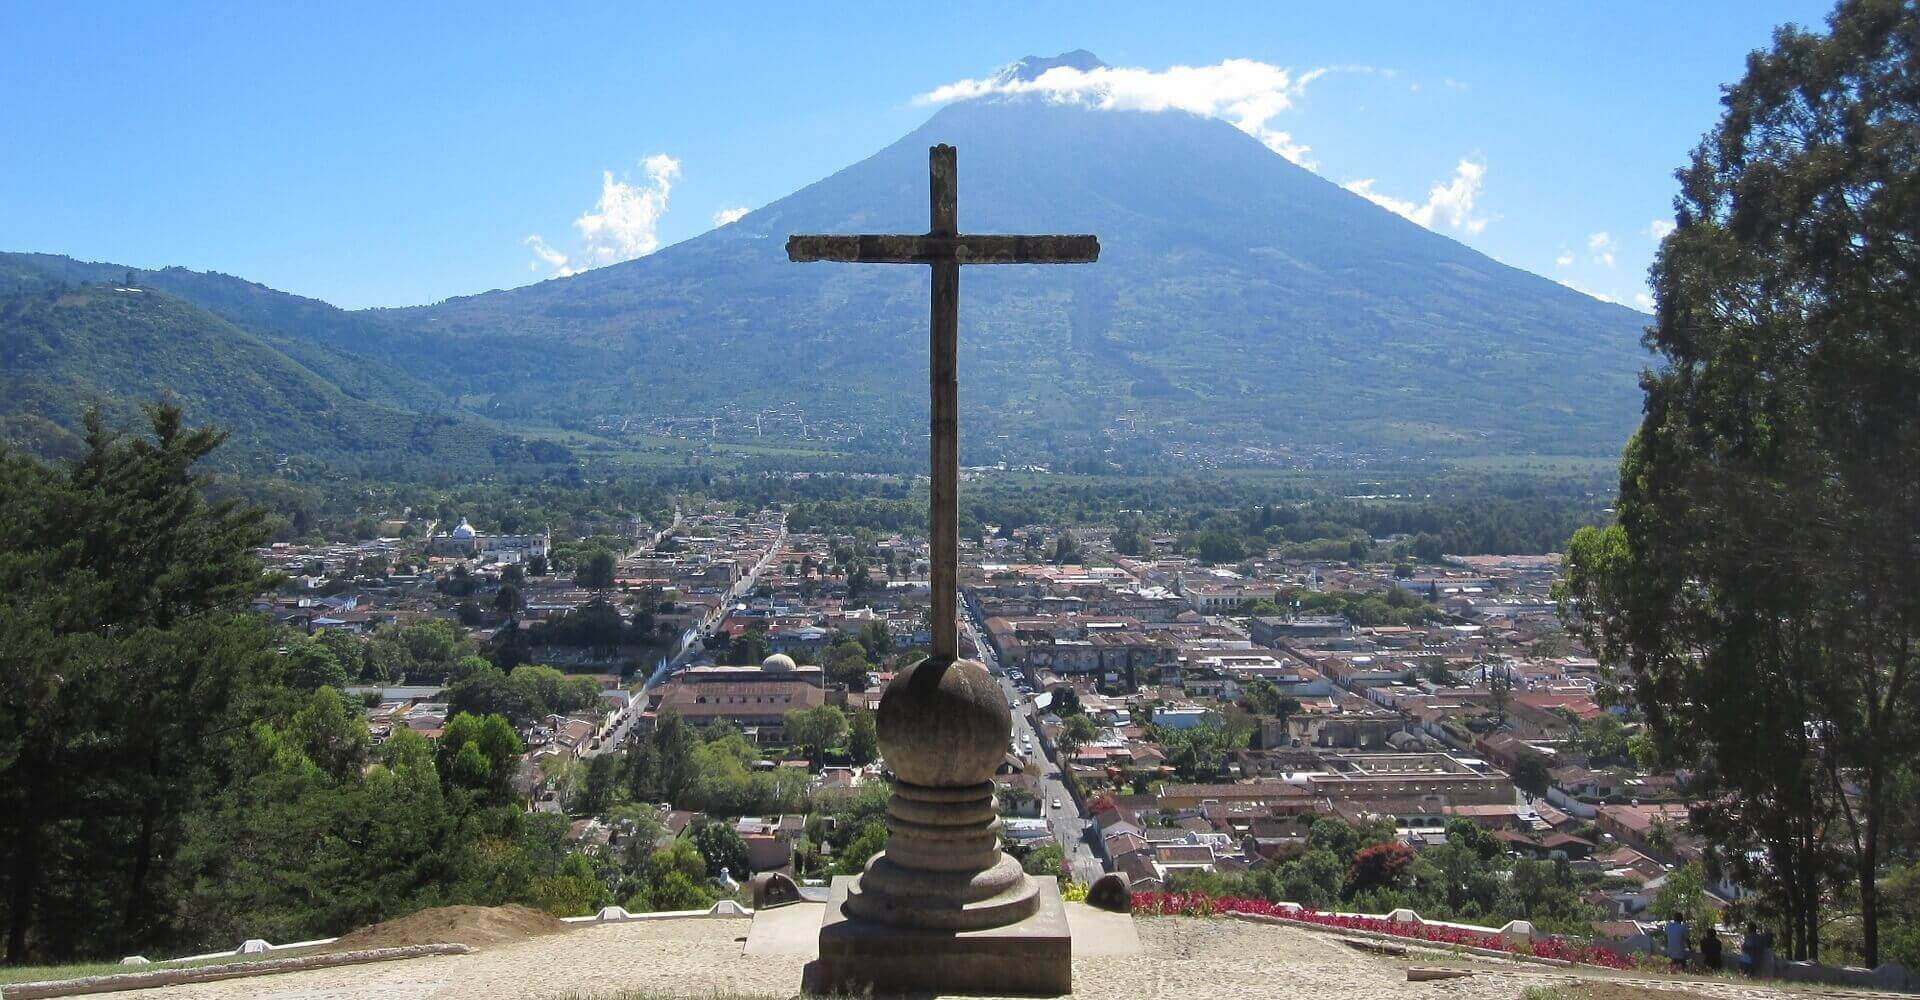 Eco-Lodge Activity Tour - OX expeditions, Antigua Guatemala